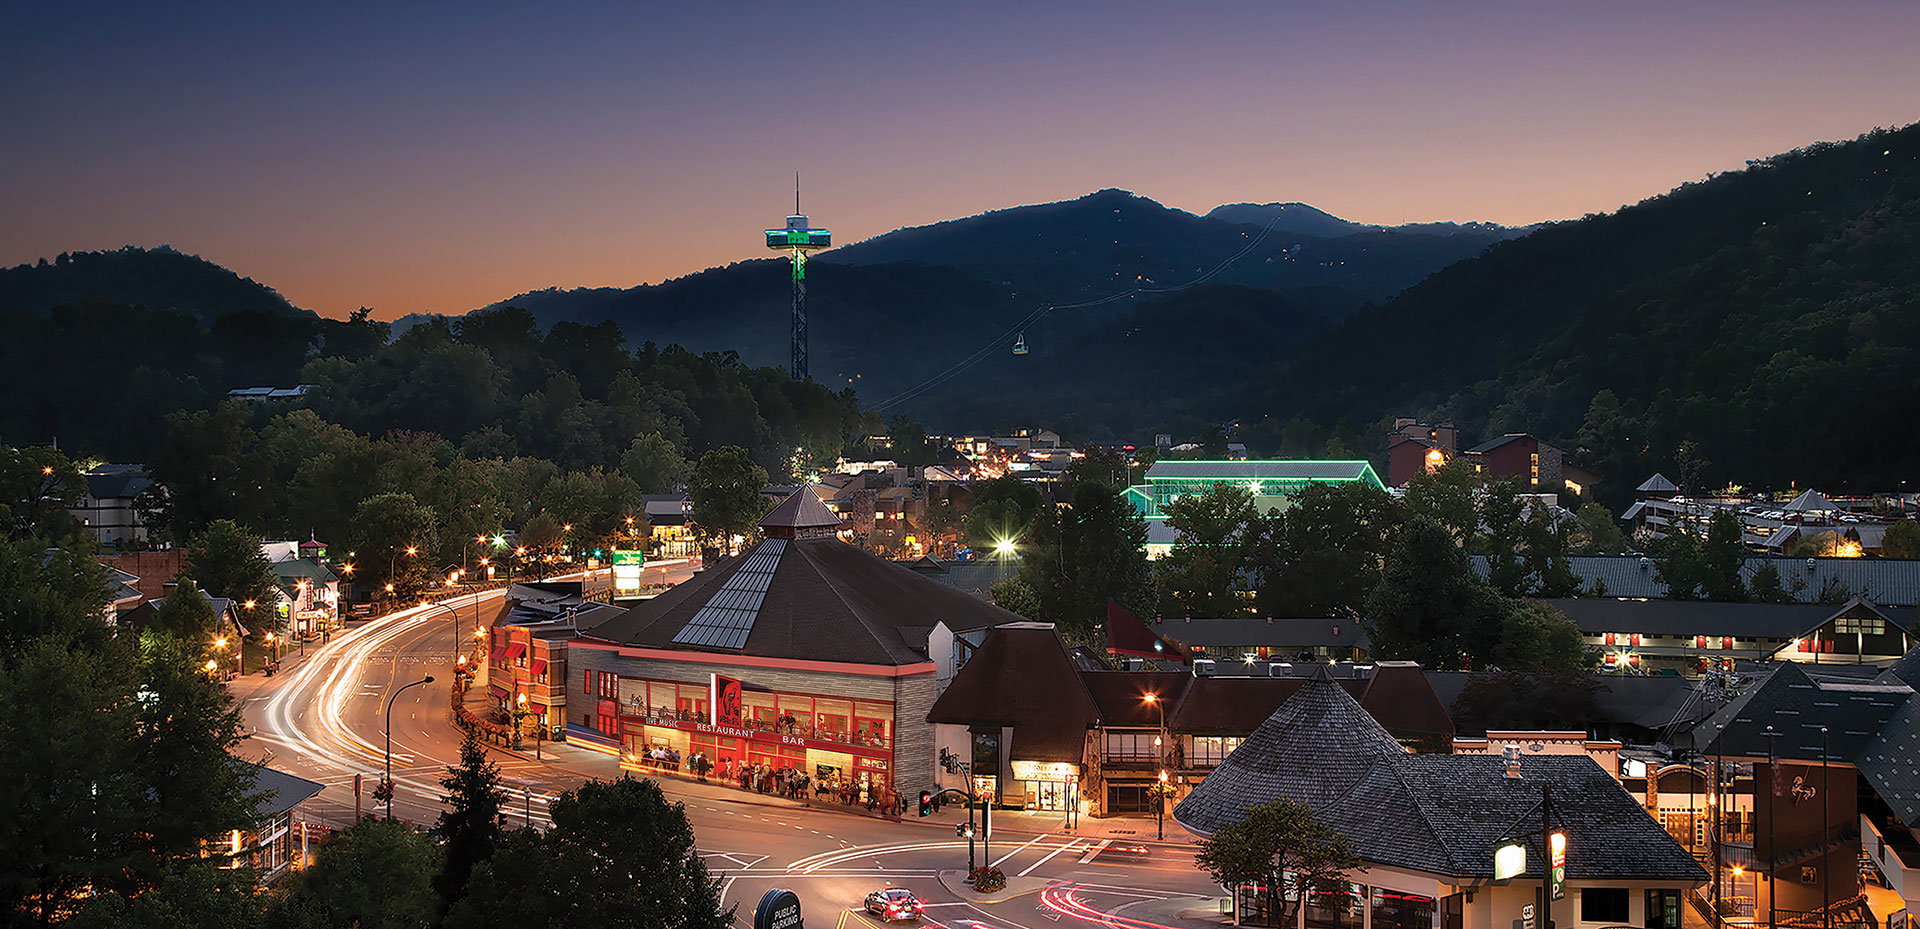 Gatlinburg Evening Cityscape | Gatlinburg Attractions | Things To Do In Gatlinburg, TN